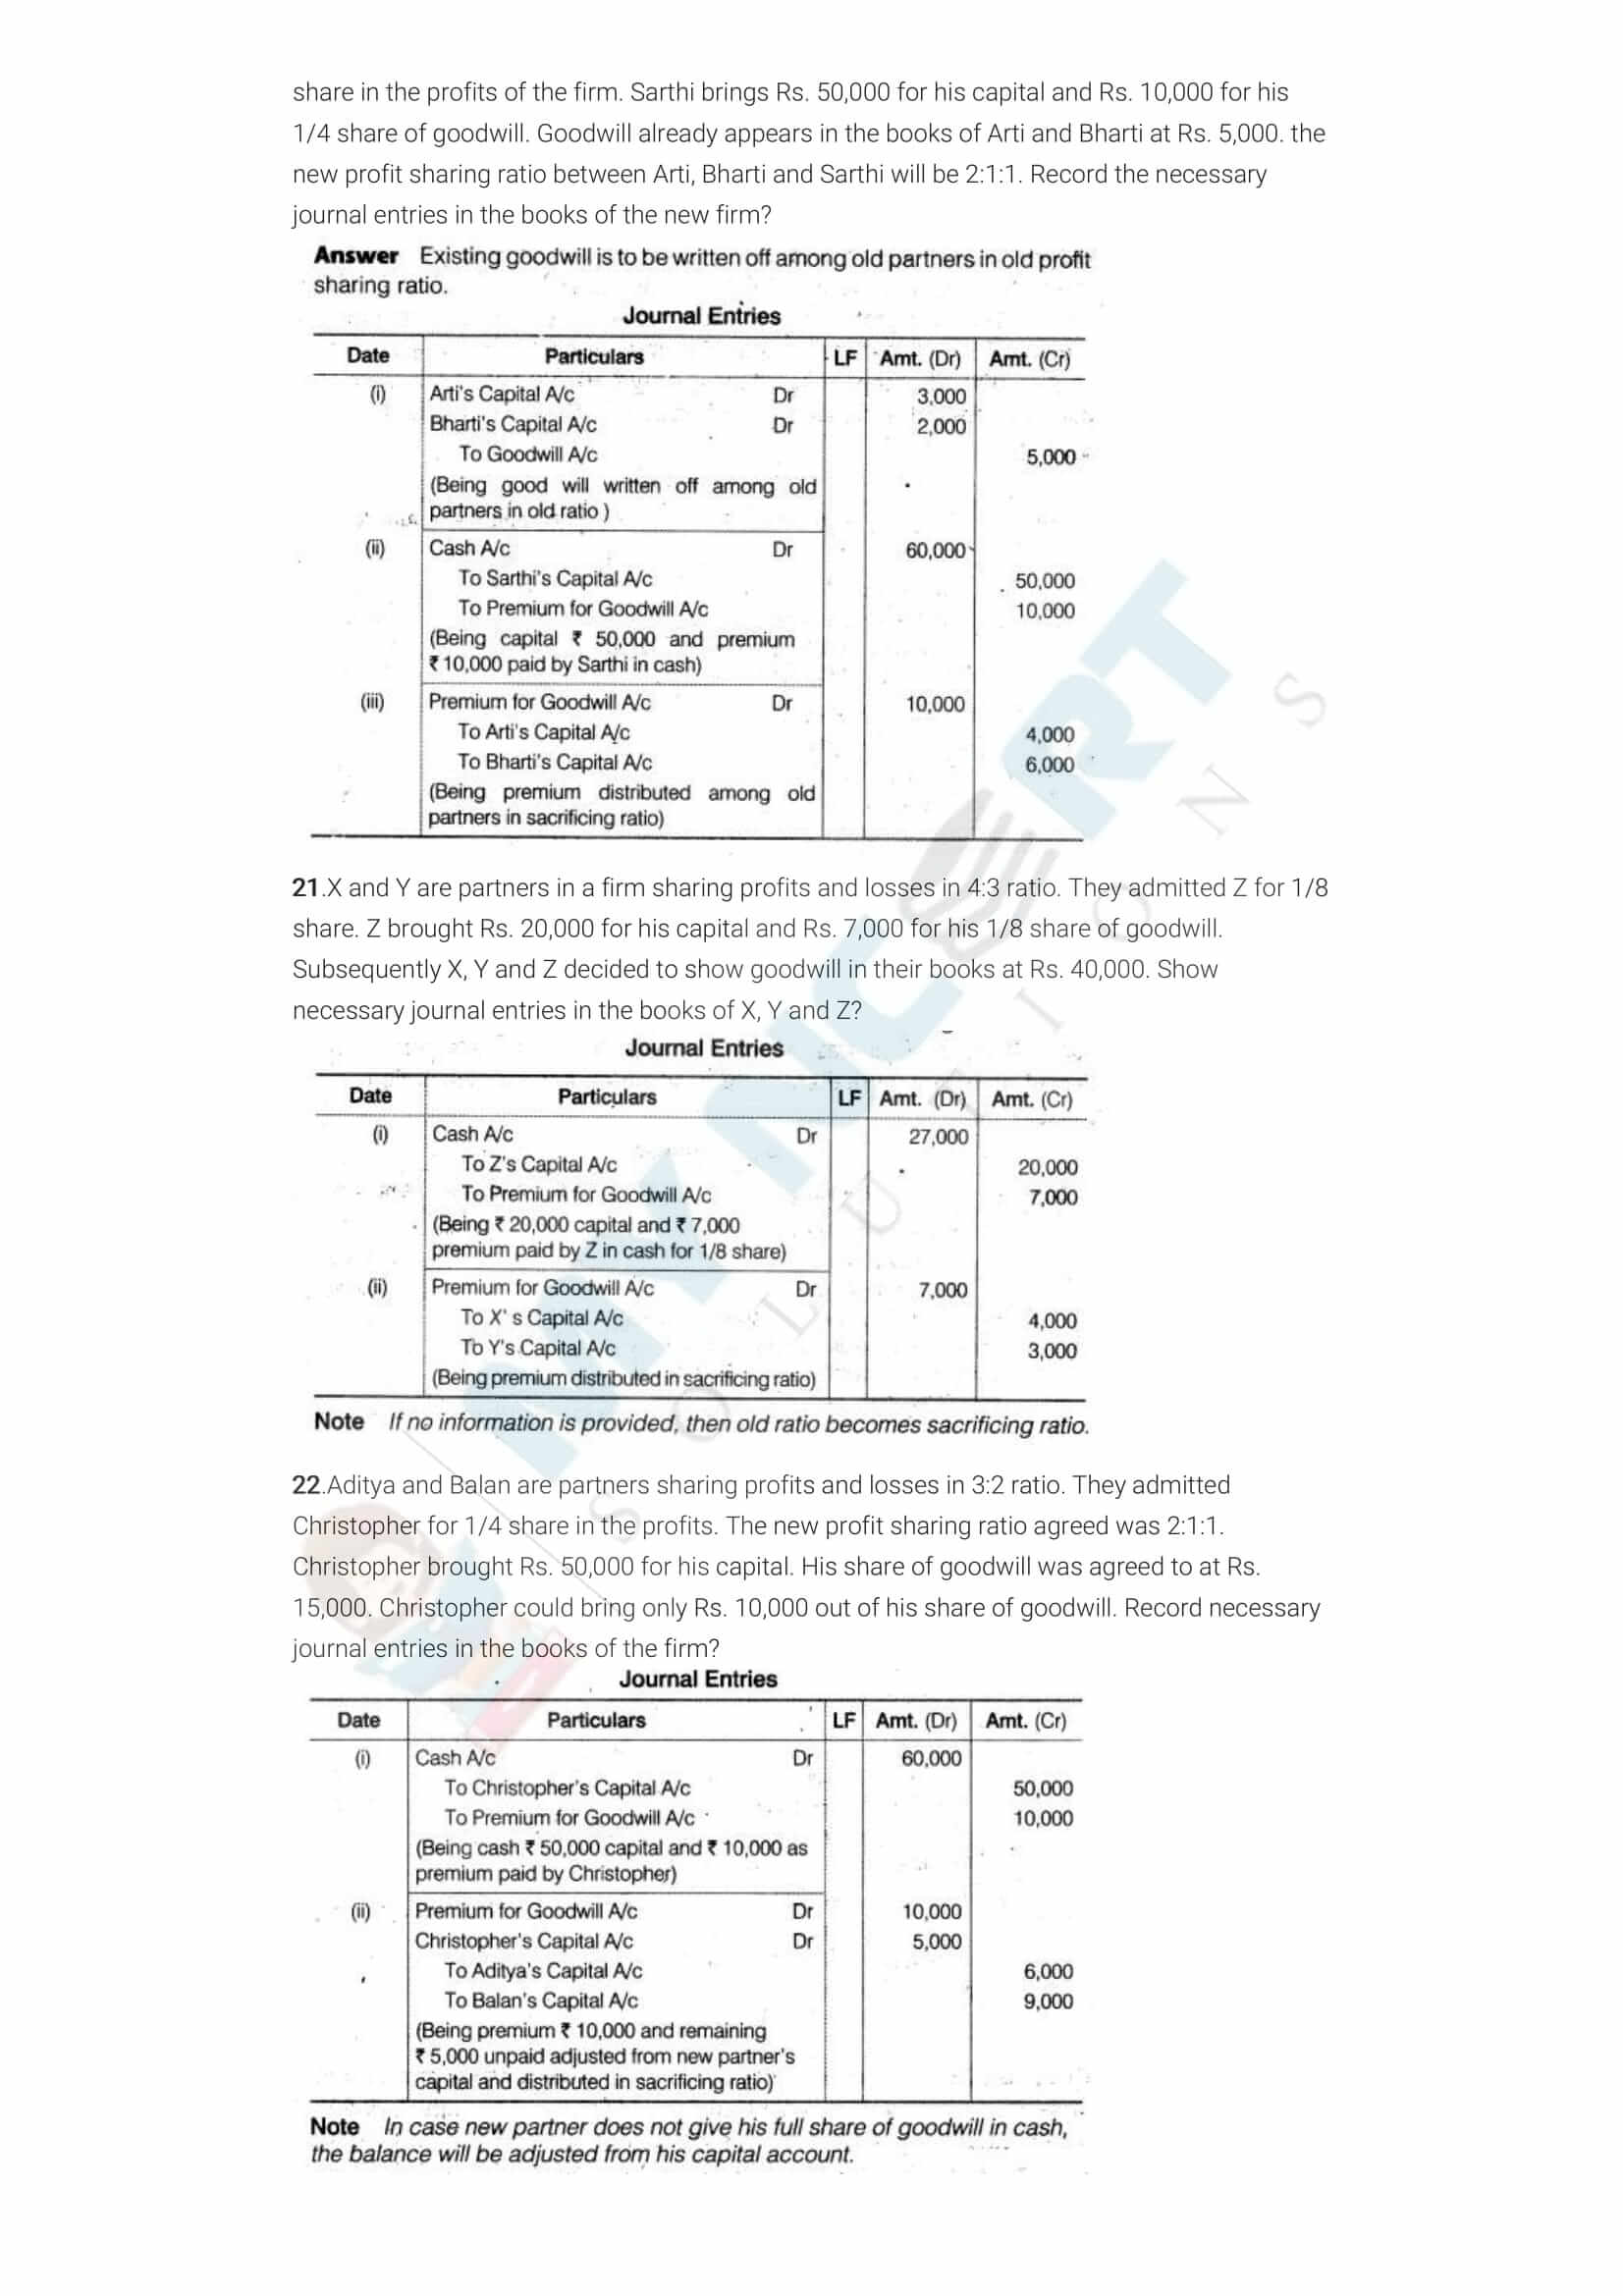 ncert solutions class 12 accountancy part 1 chapter 3 reconstitution of a partnership firm admission of a partner 05